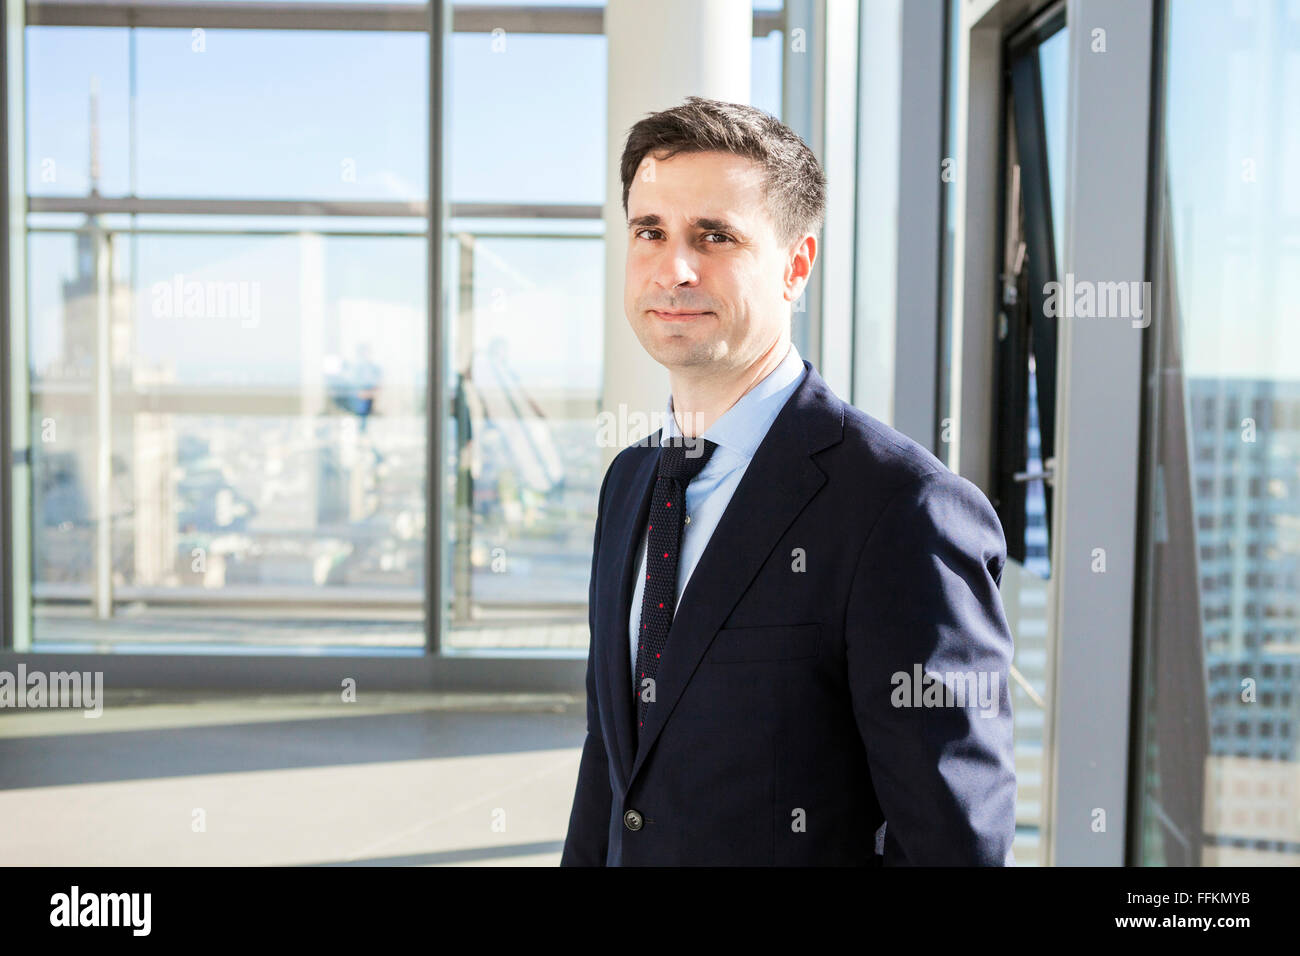 Portrait of well-dressed businessmen in modern office - Stock Image